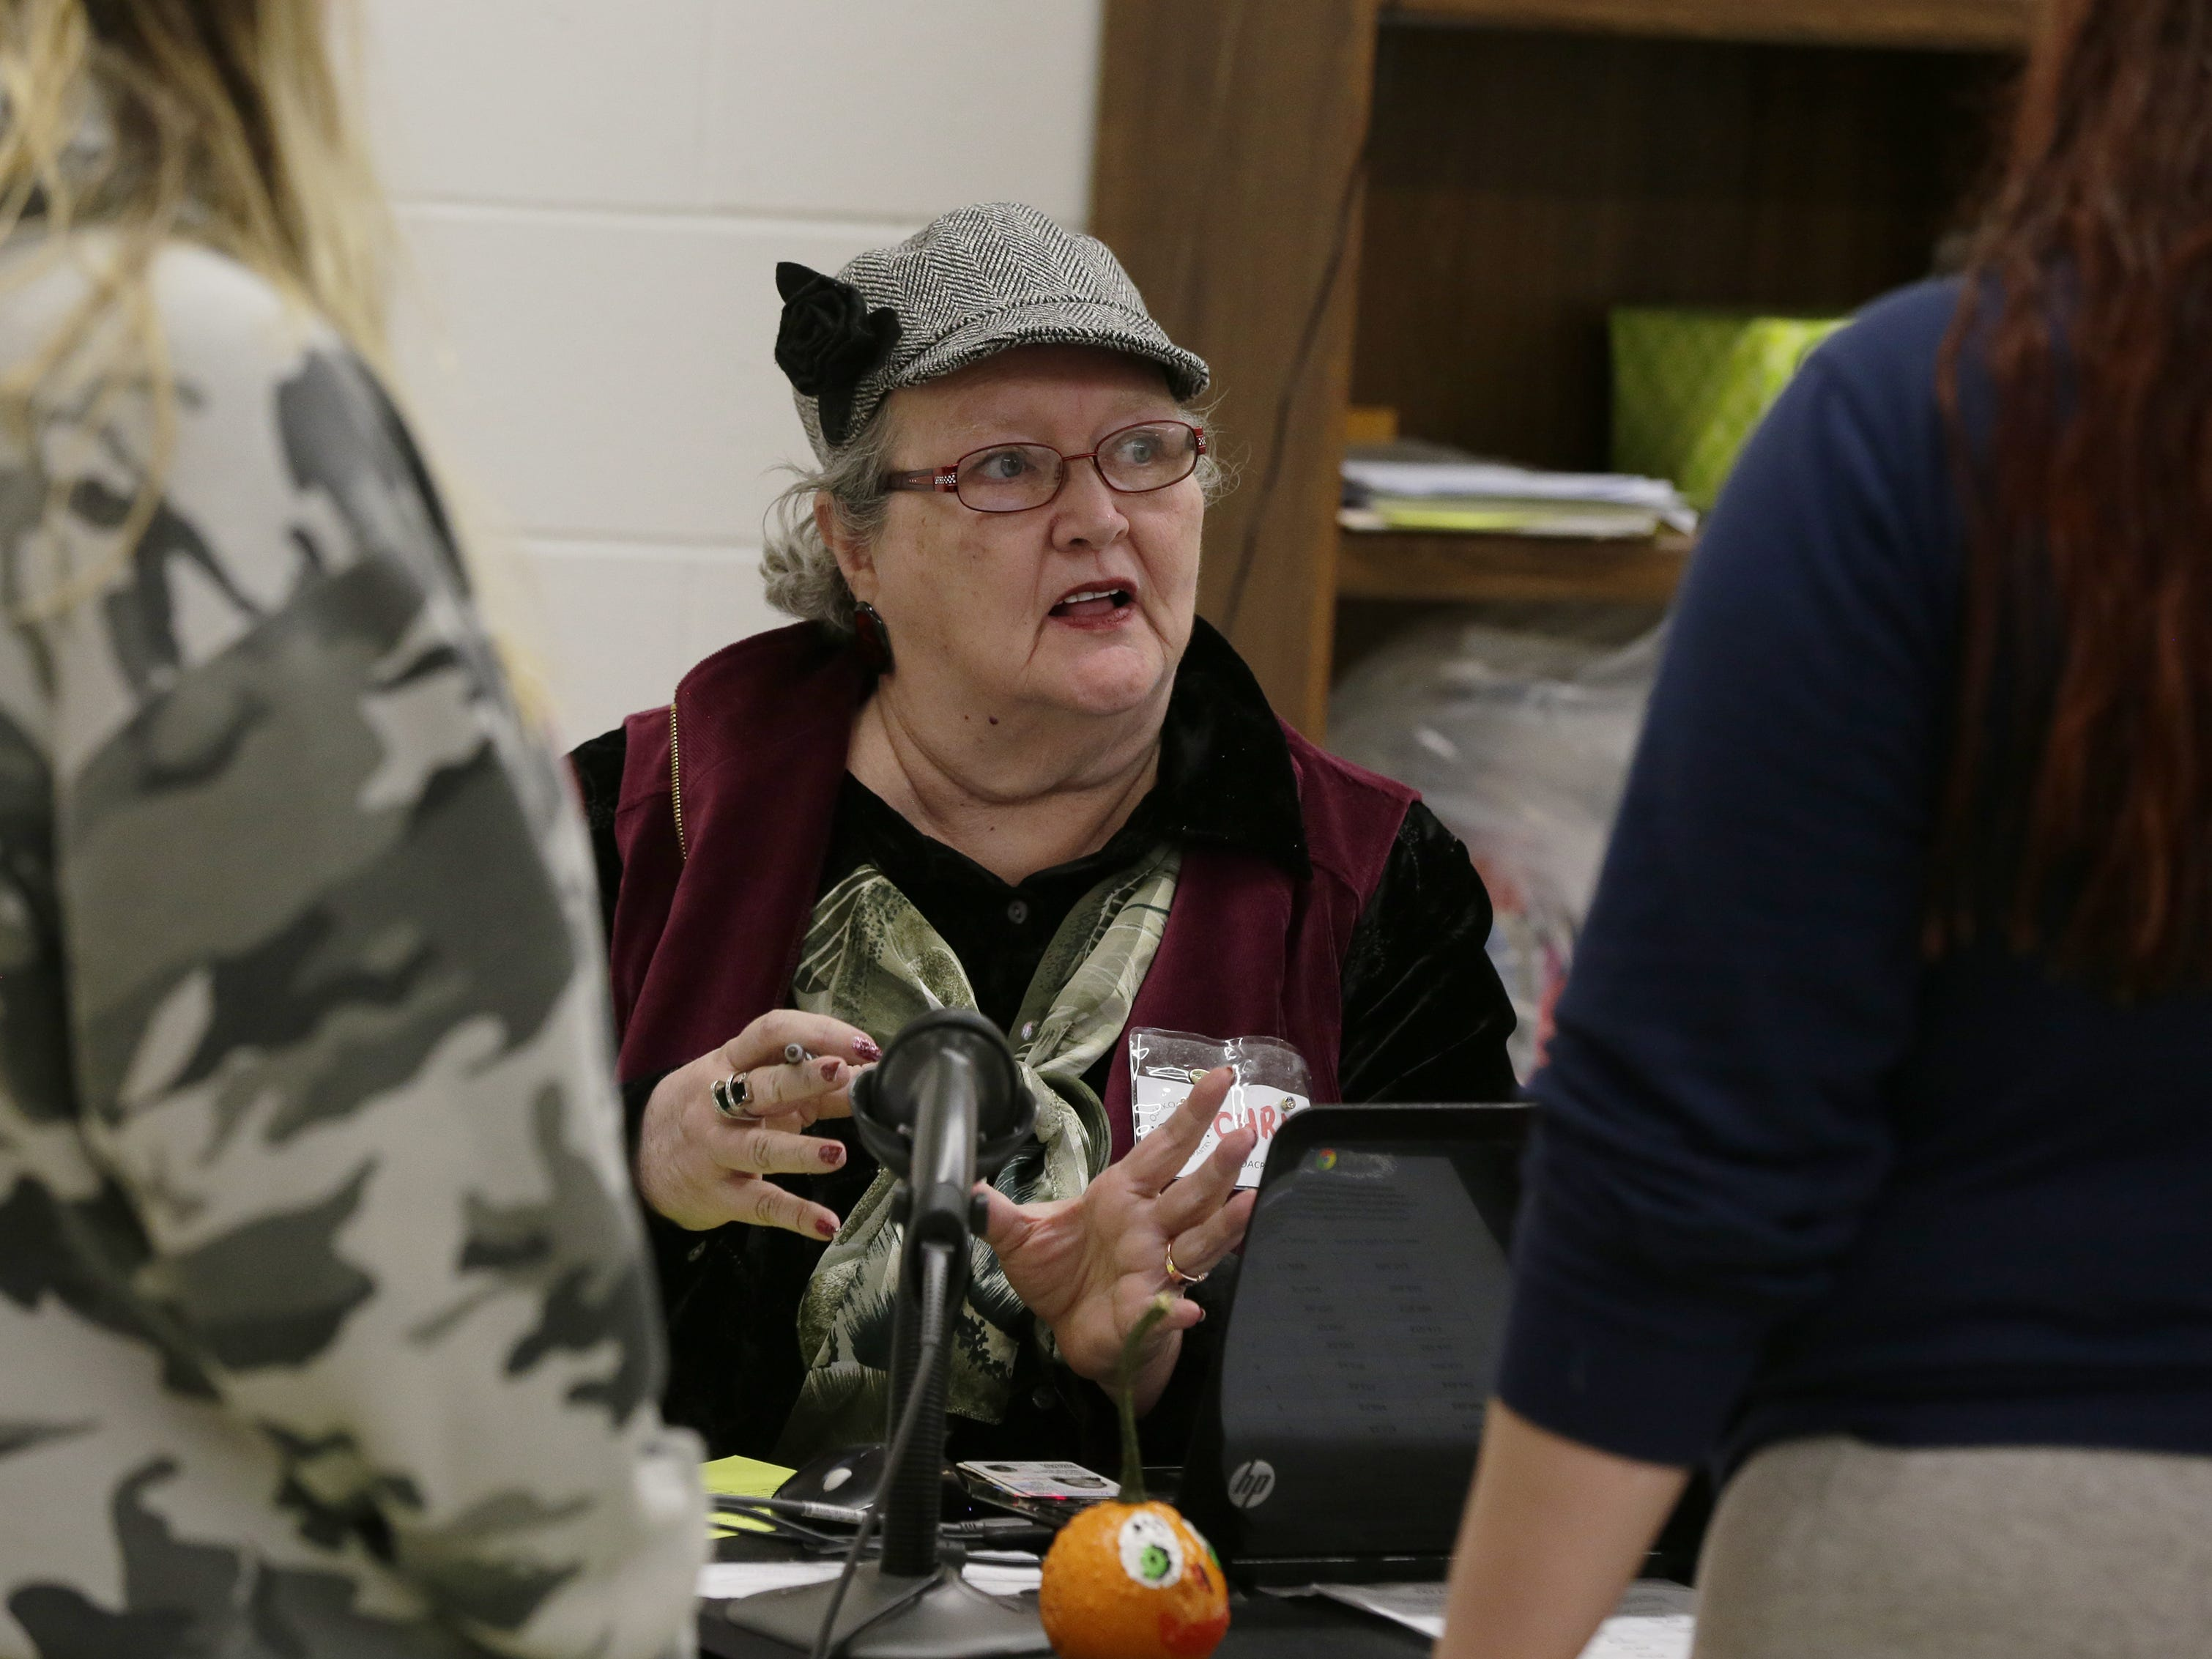 Chris Moore checks in clients before they can get food Wednesday, Oct. 24, 2018, at the Oshkosh Area Community Pantry. Moore volunteers and uses the pantry, which serves over 2,000 families each month.